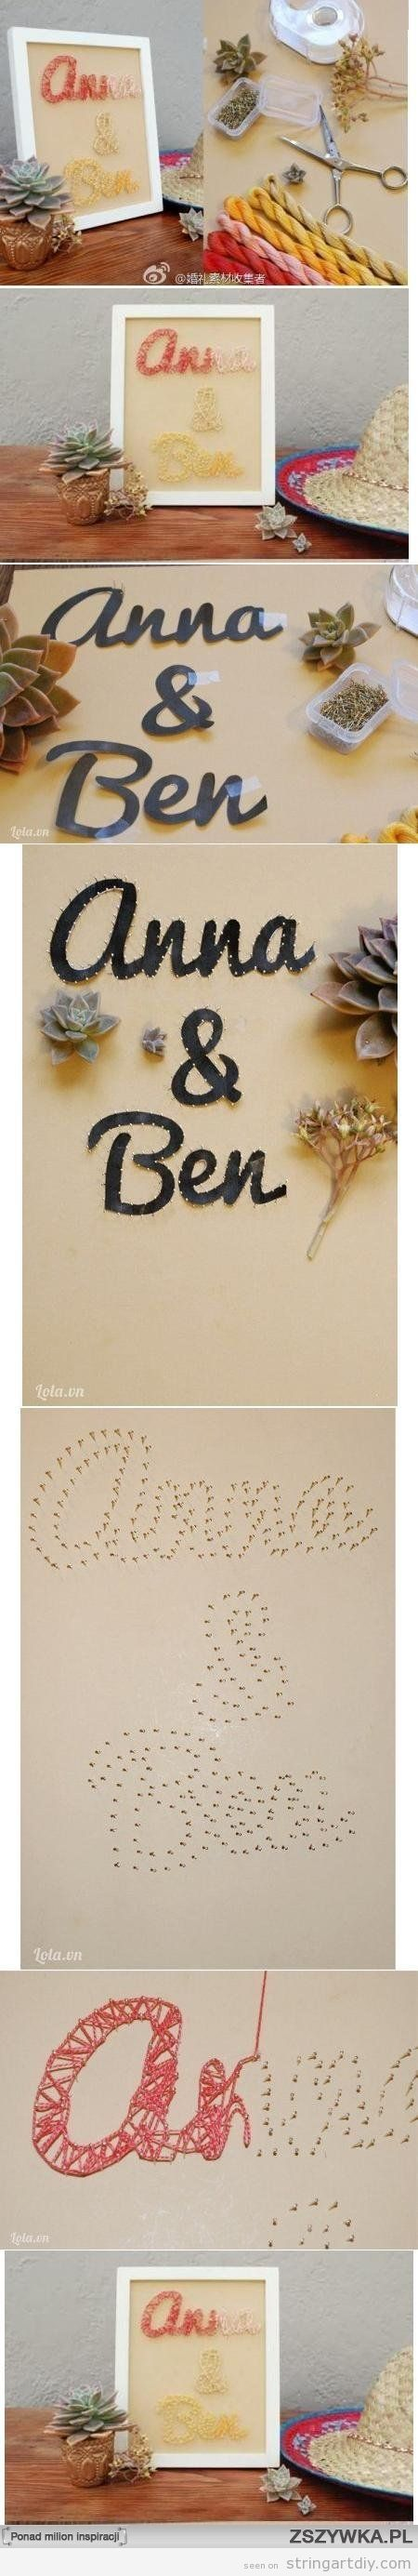 String Art DIY tutorial step by ste with names